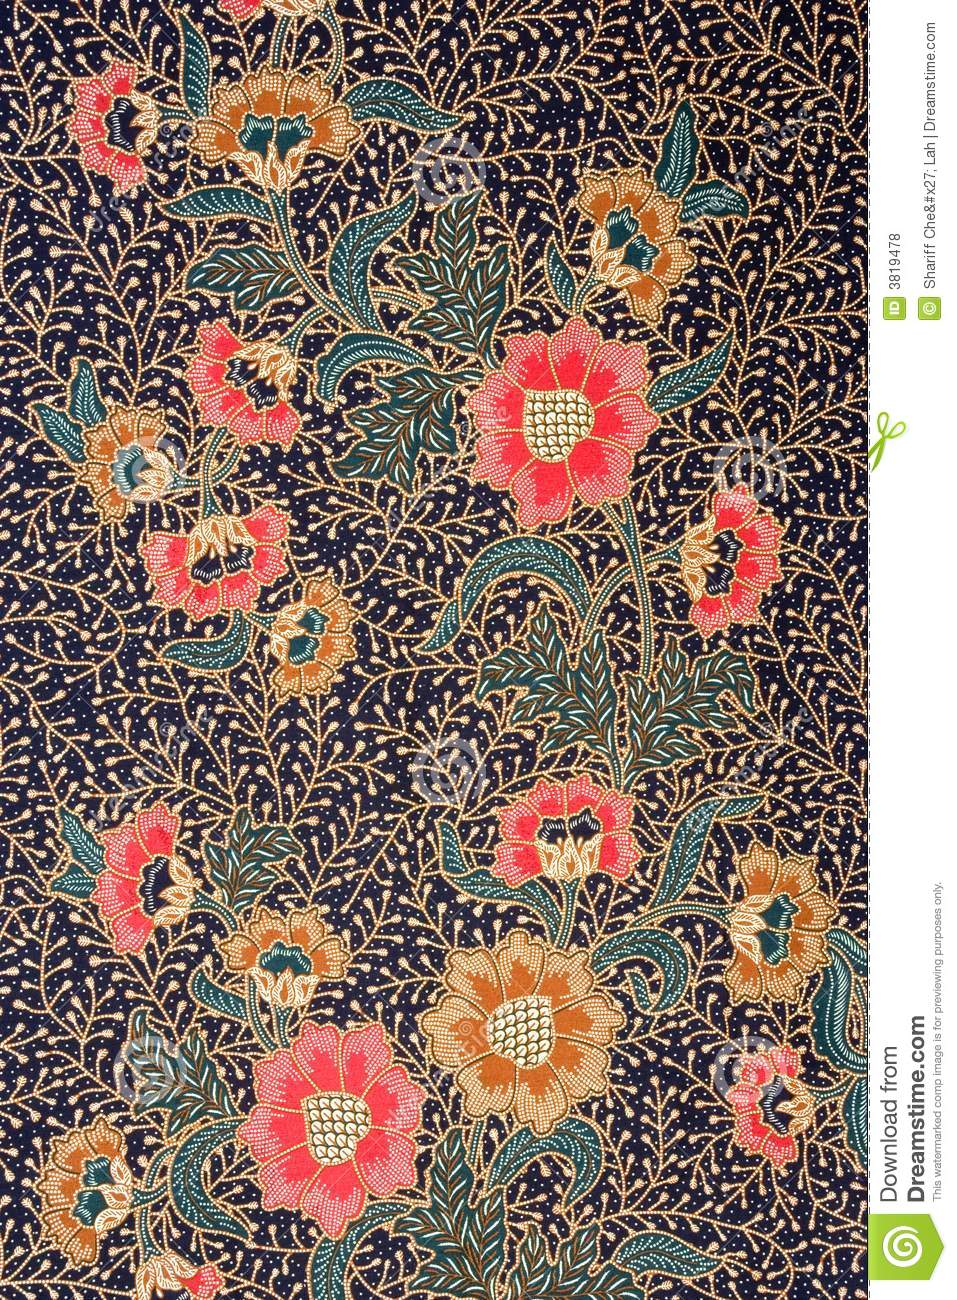 Indonesian Batik Sarong Royalty Free Stock Photos - Image: 3819478